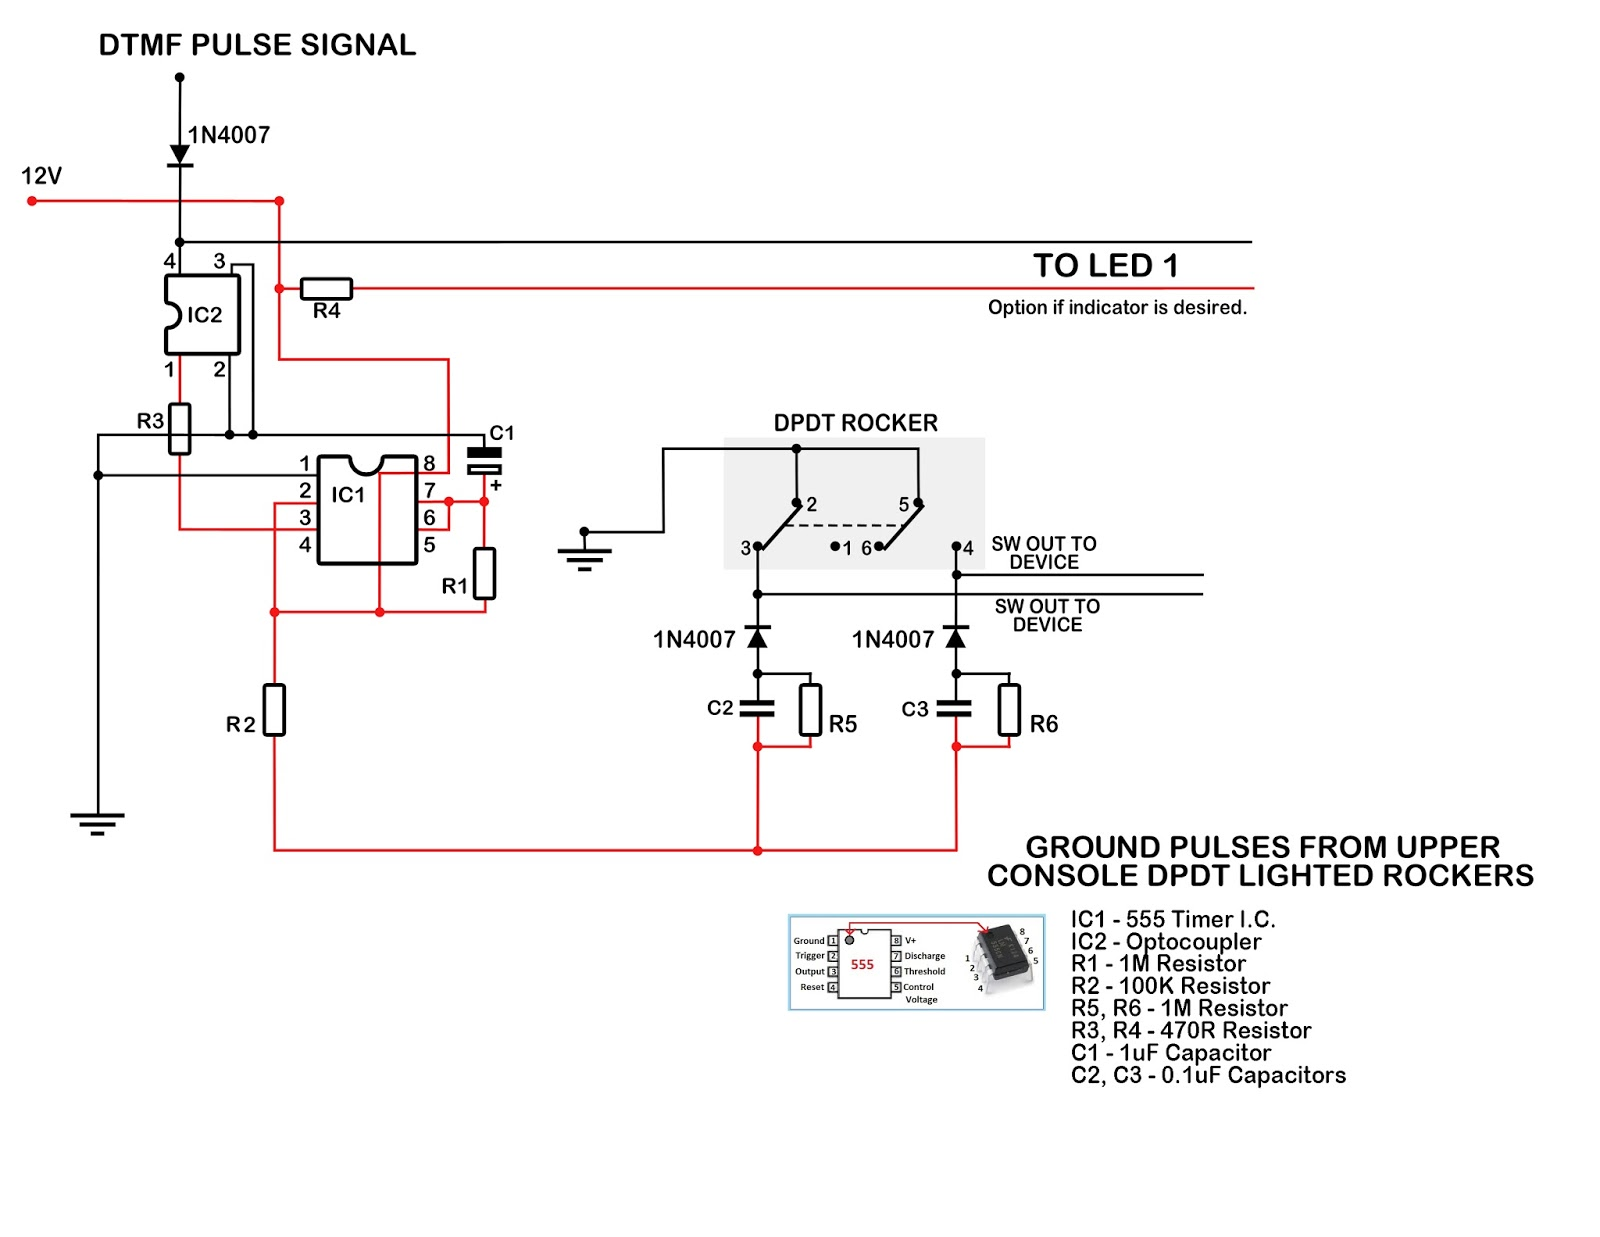 My Knight Rider 2000 Project 2015 Circuit Using 555 Timer Ic On Circuits Schematics Countdown Here Is A Diagram Showing How I Have The Switches Wired Up To This Really Great Because Originally Thought Was Going Need